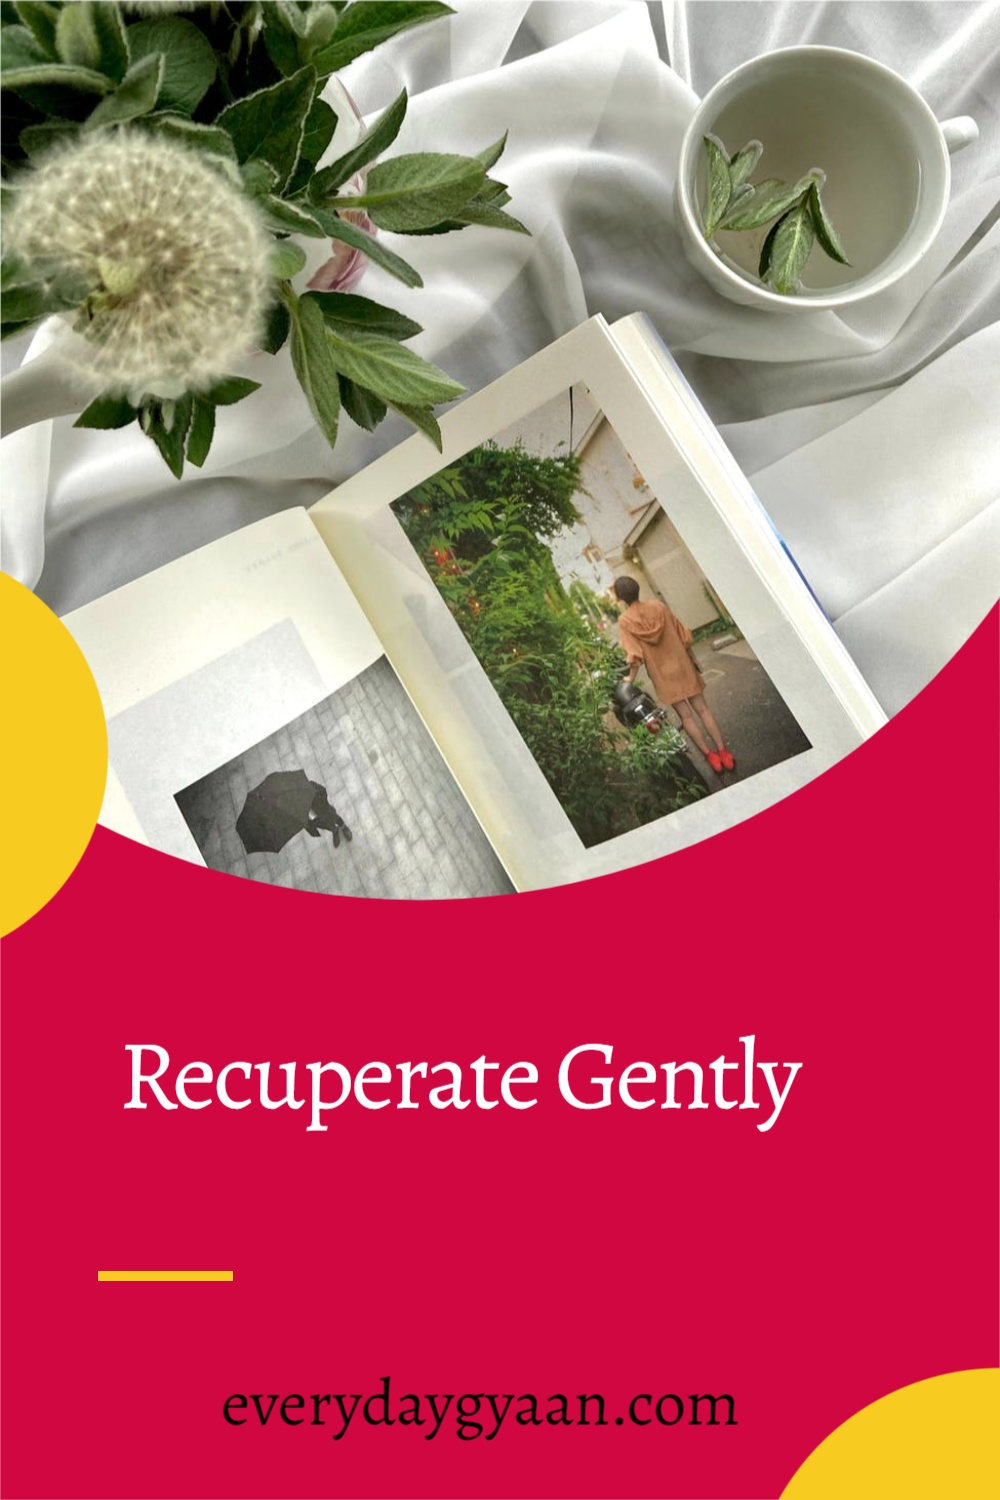 Recuperate Gently